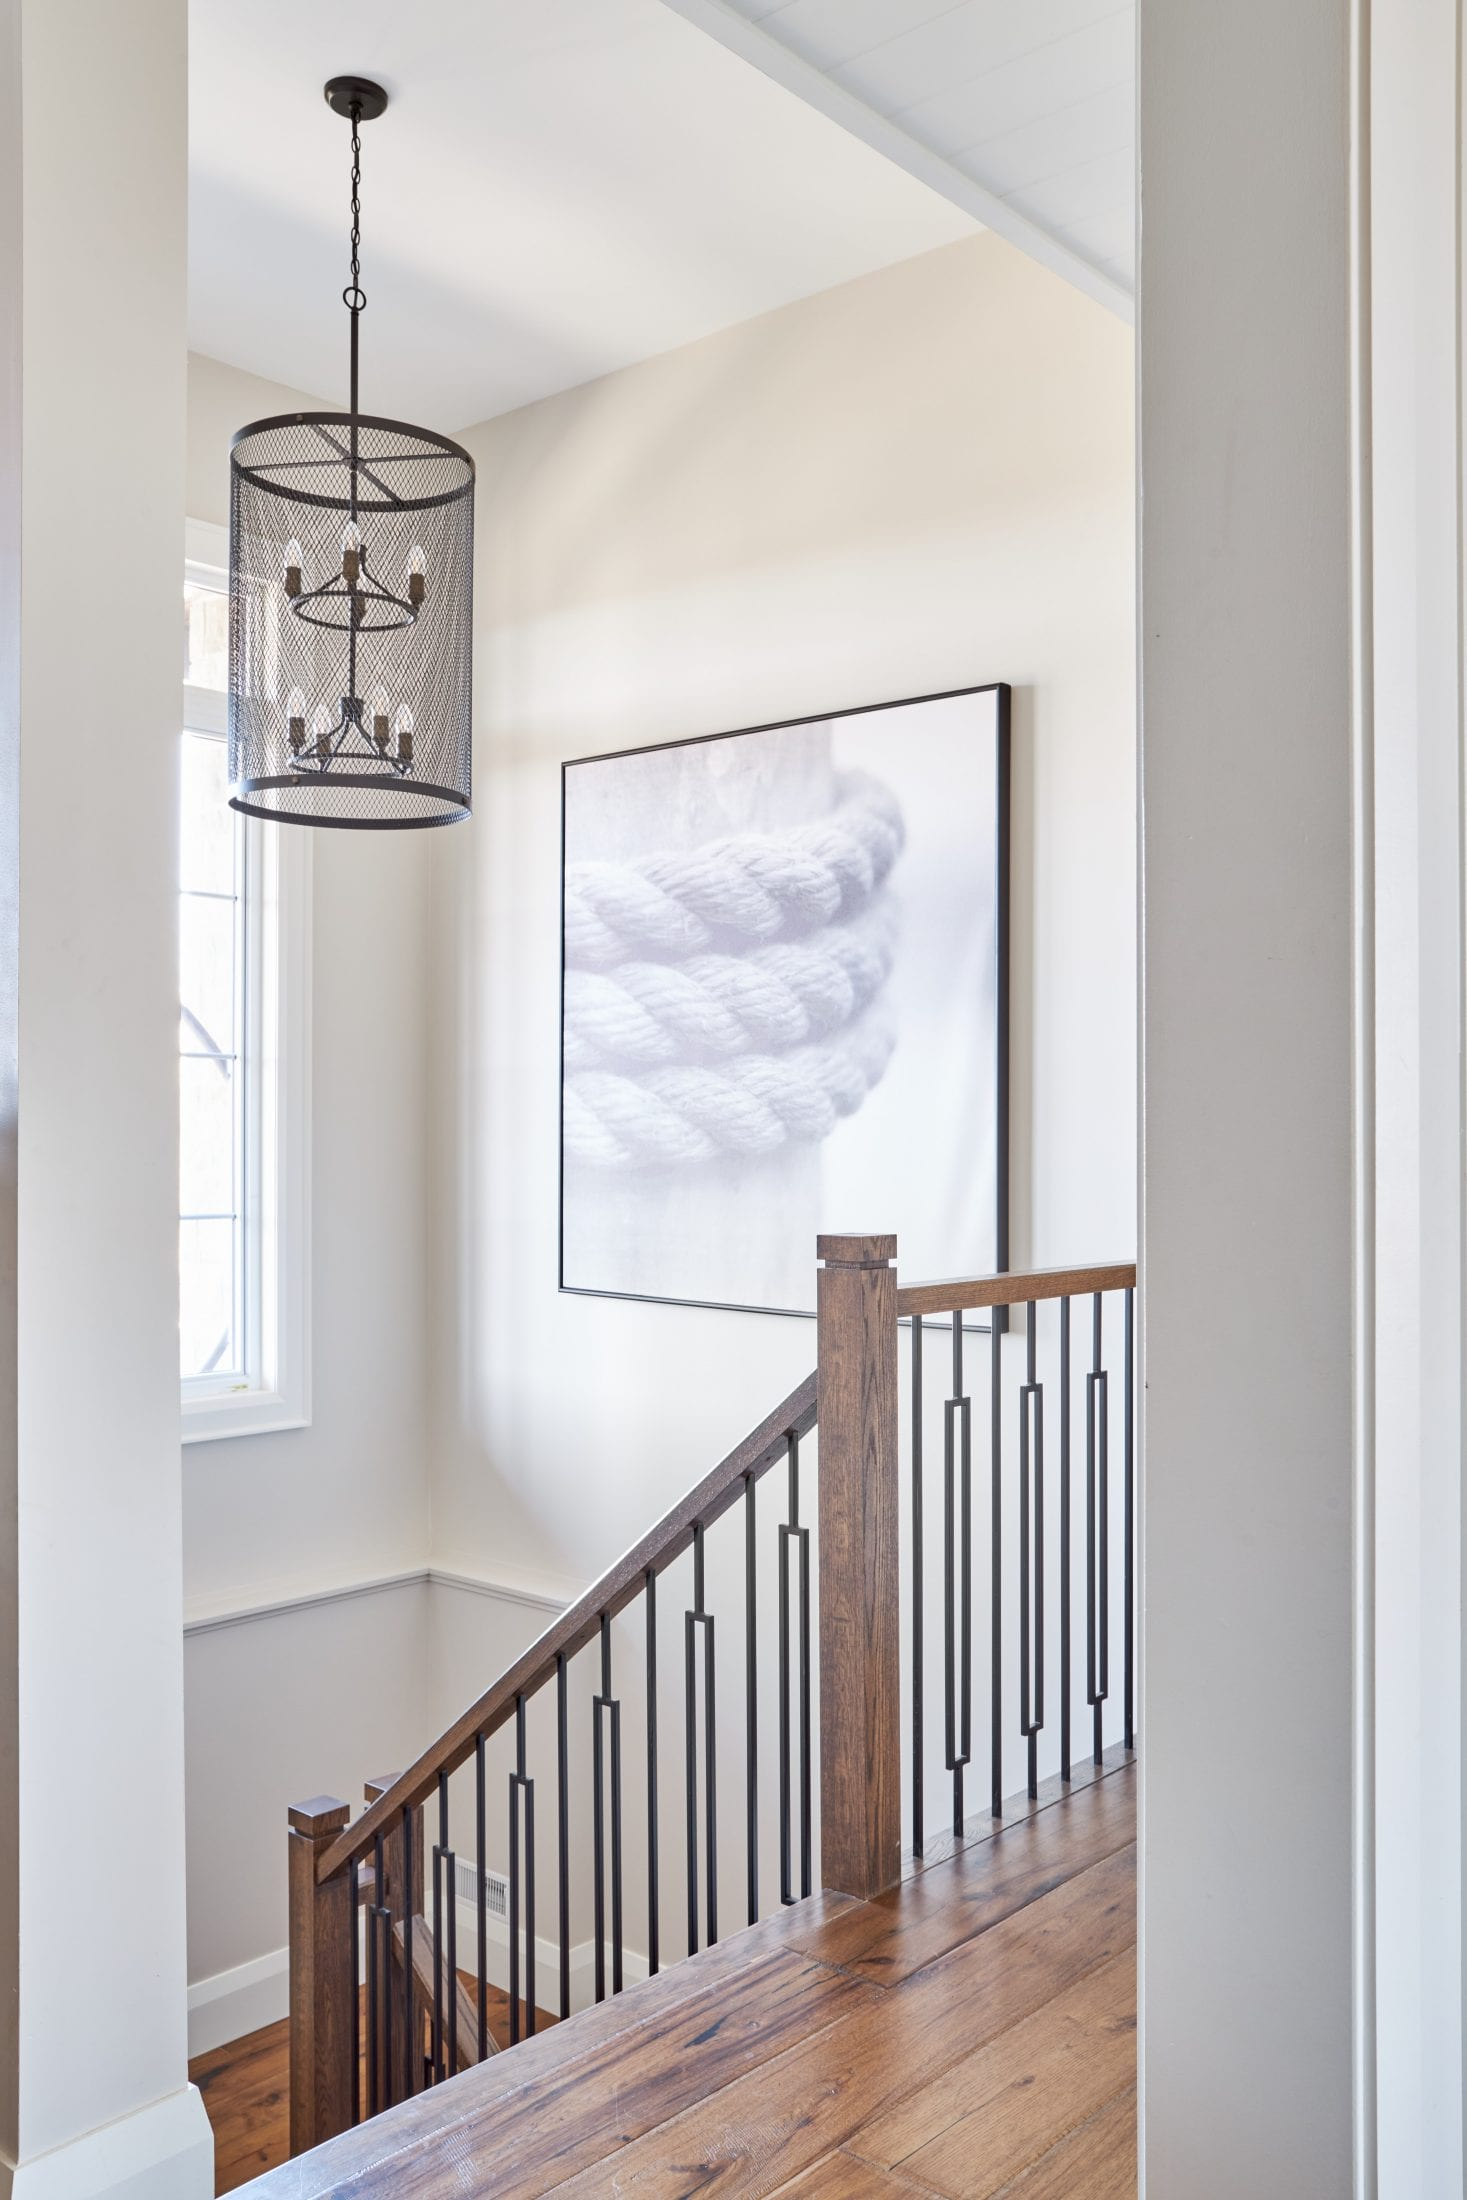 Staircase artwork ideas and large light fixture for tall stairwell